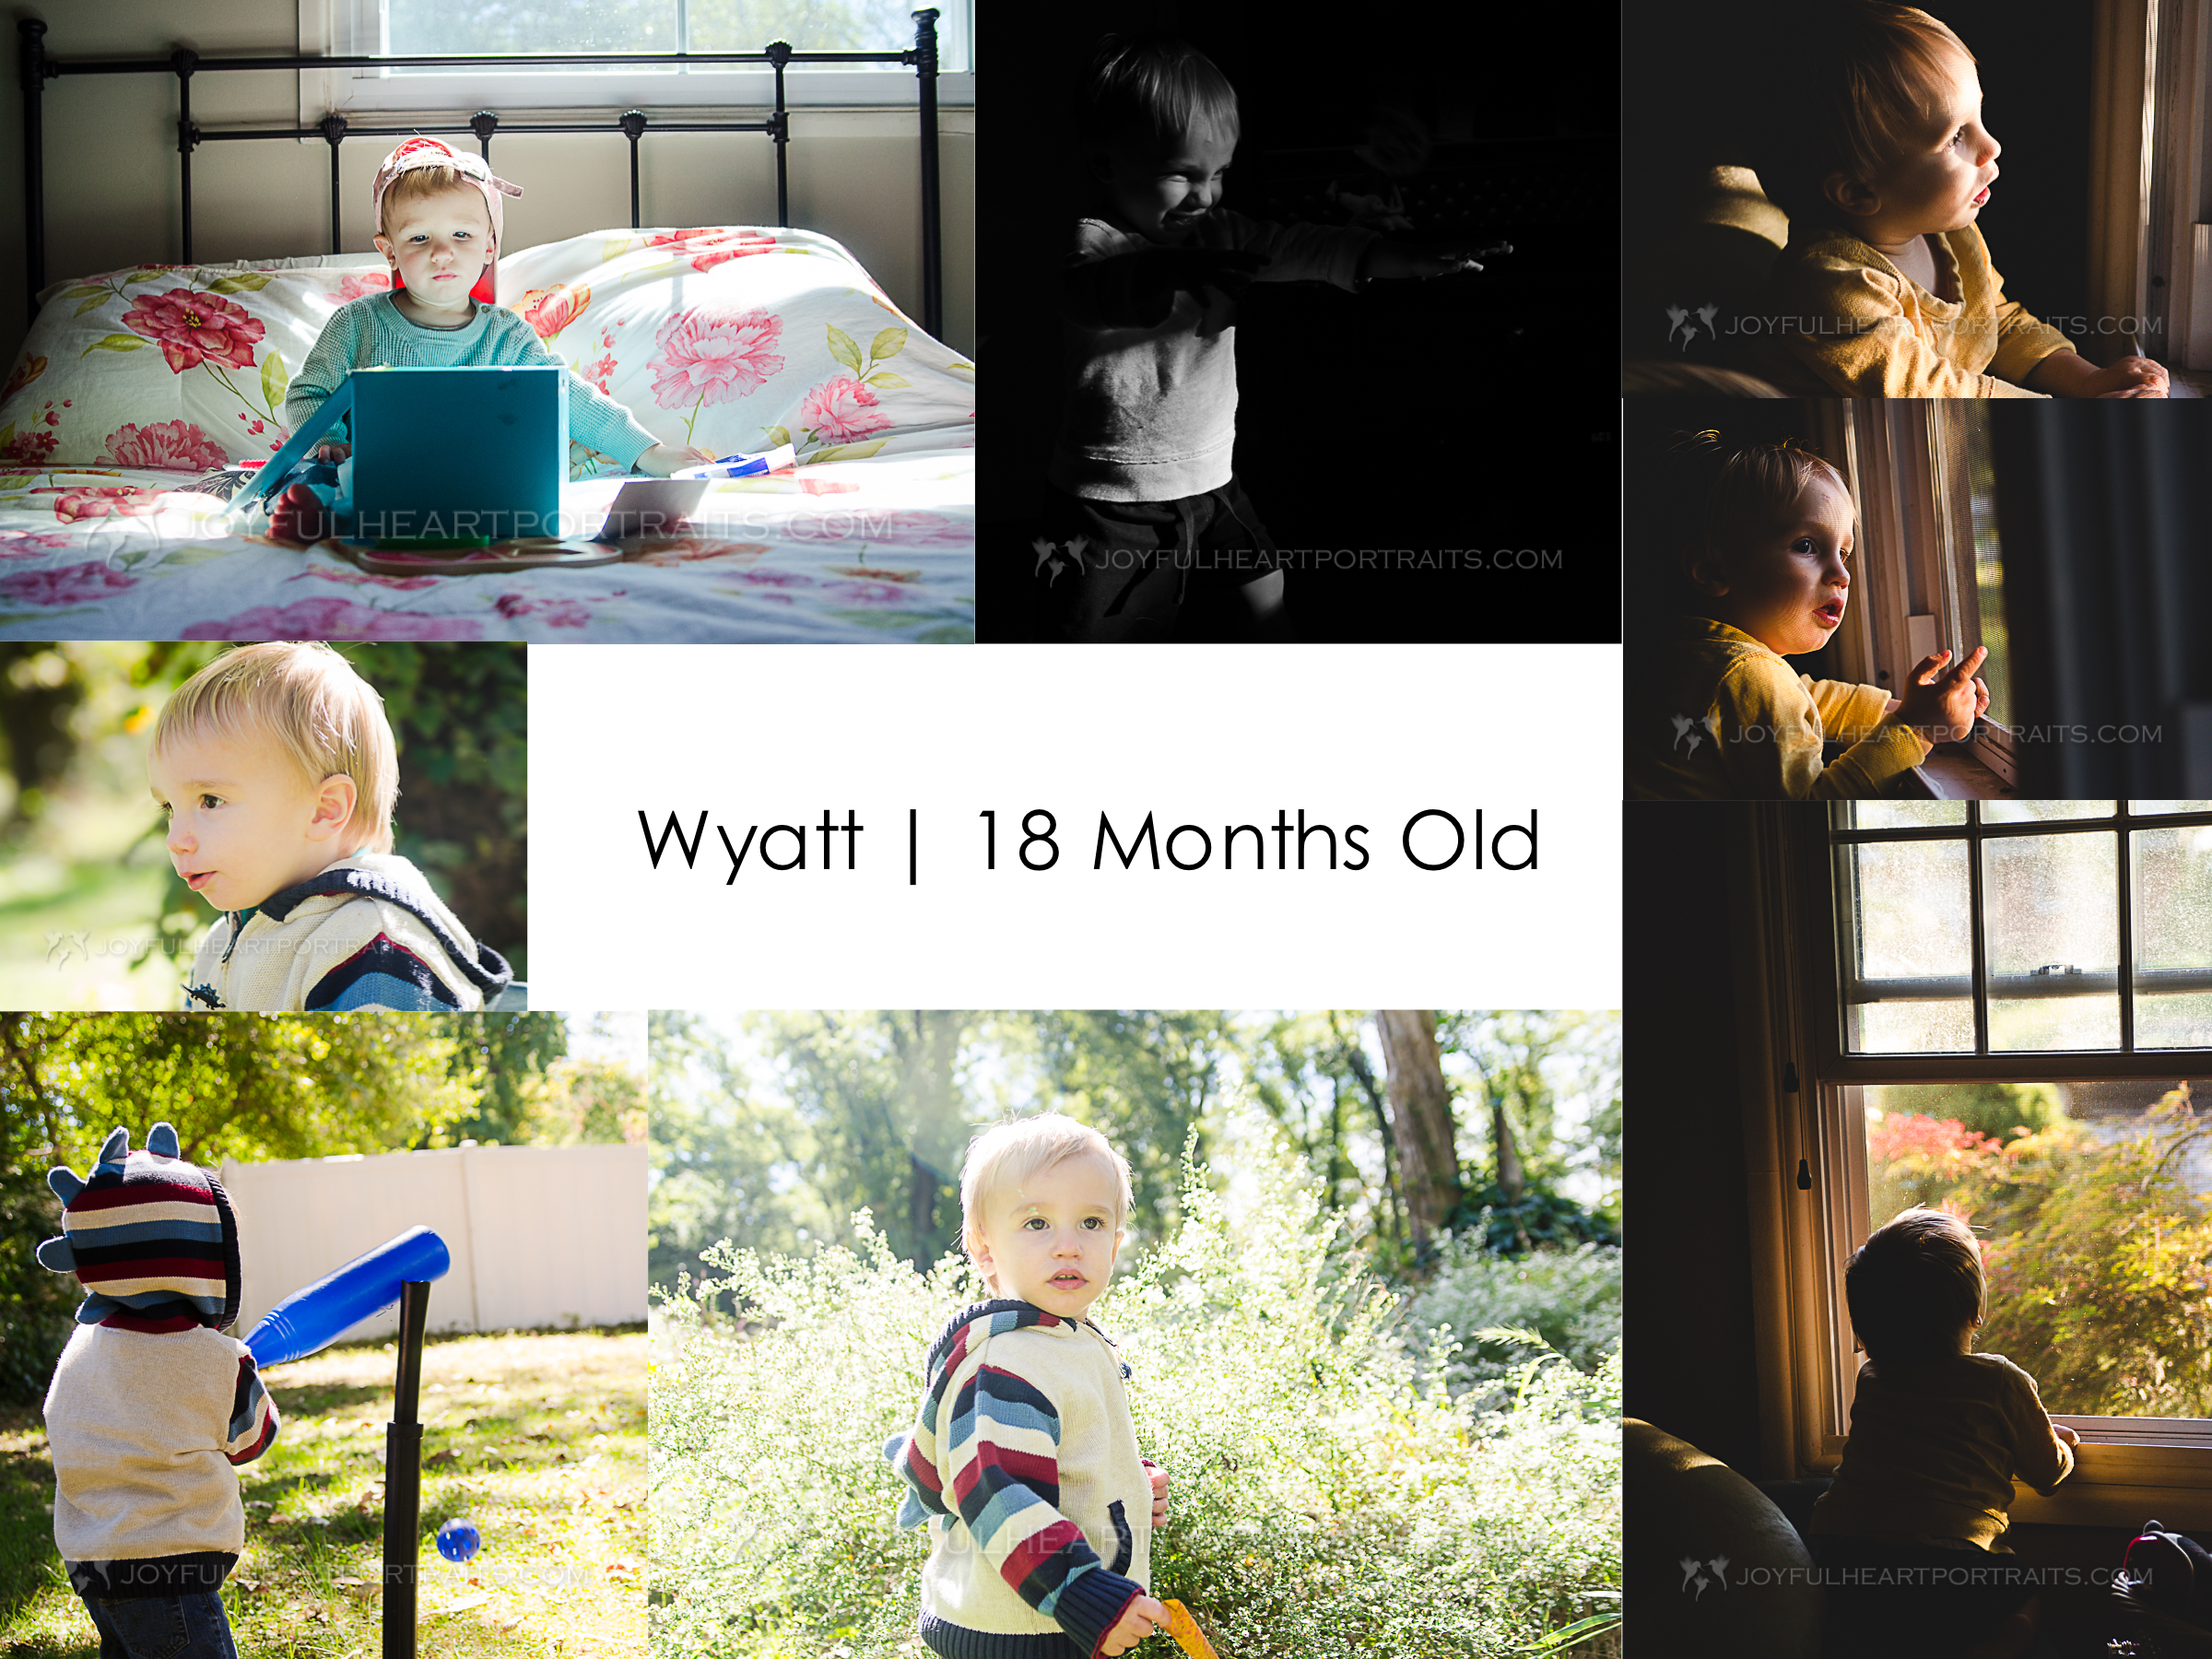 The last of the baby days: Wyatt's 18 months